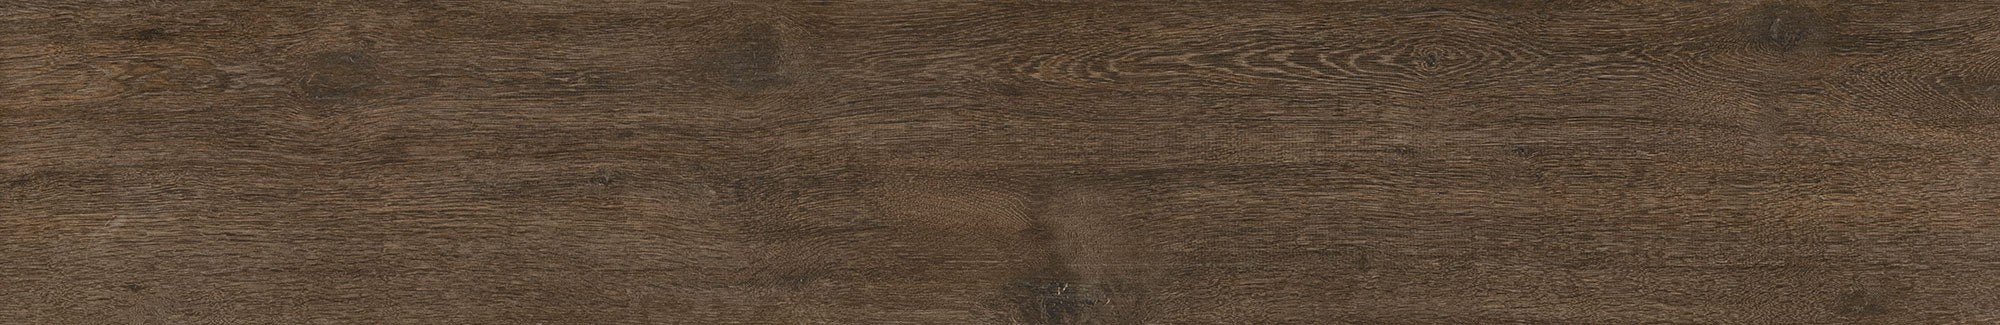 RAK Tiles - Natural Hard Wood Brown - 195x1200mm